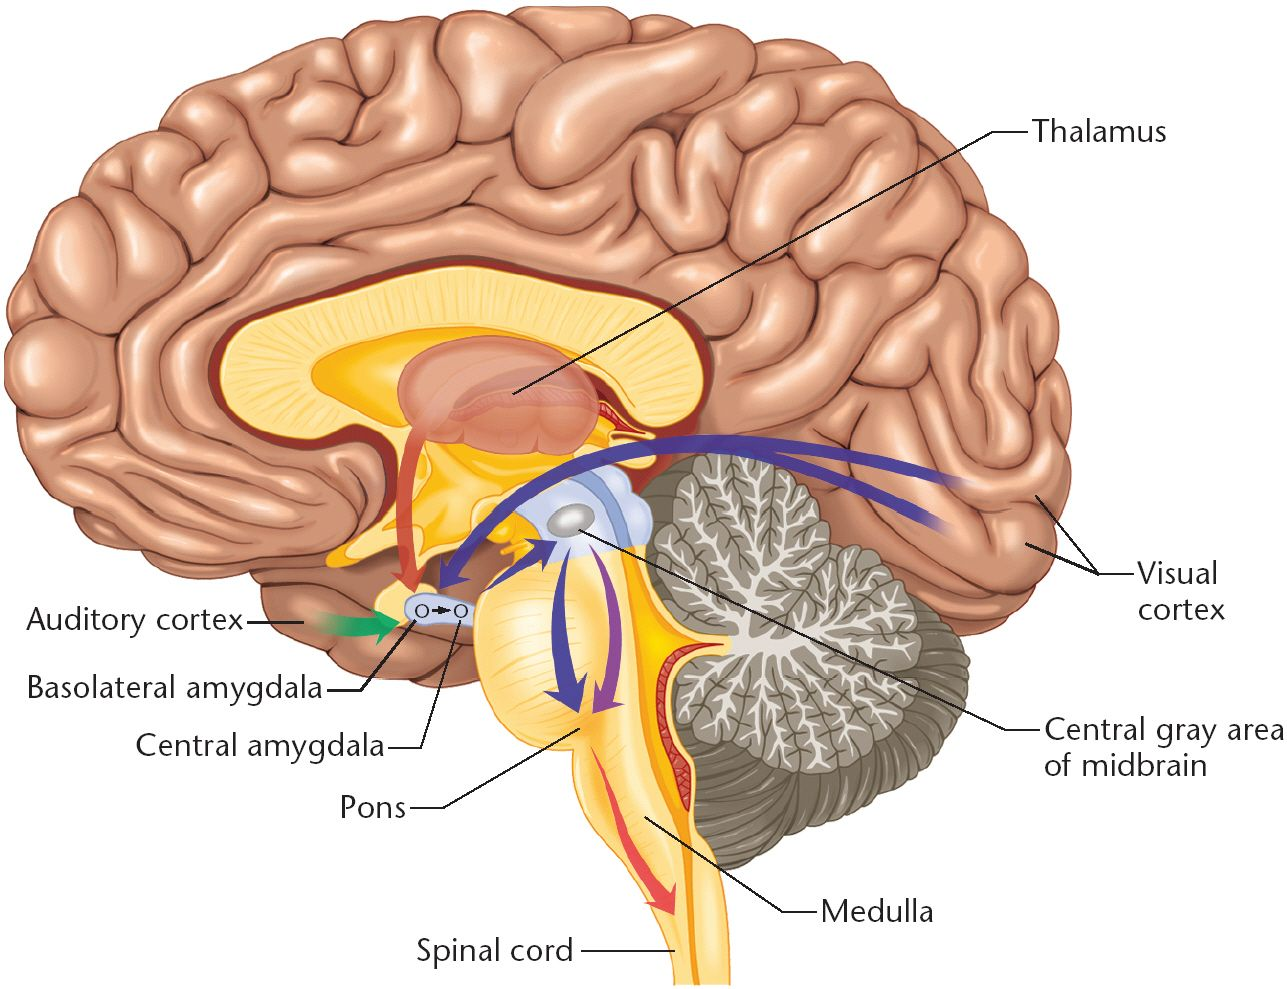 All Parts Of Inside Brain Unlabeled Diagram Brain Diagram Labeled ...